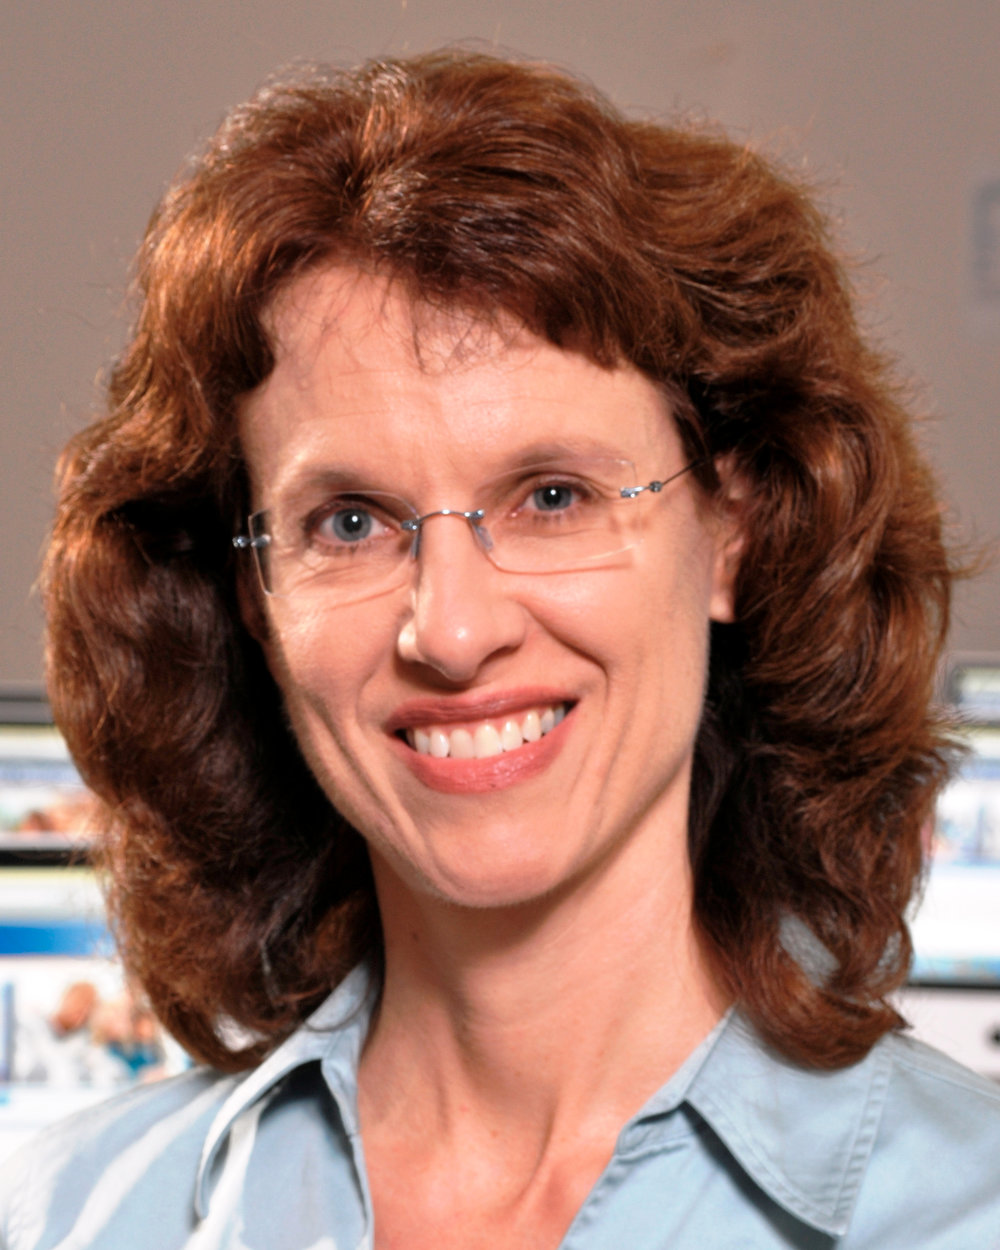 Dr. Cathy Cavanaugh, Principle Program Manager for Learning Research and Analytics, Microsoft -